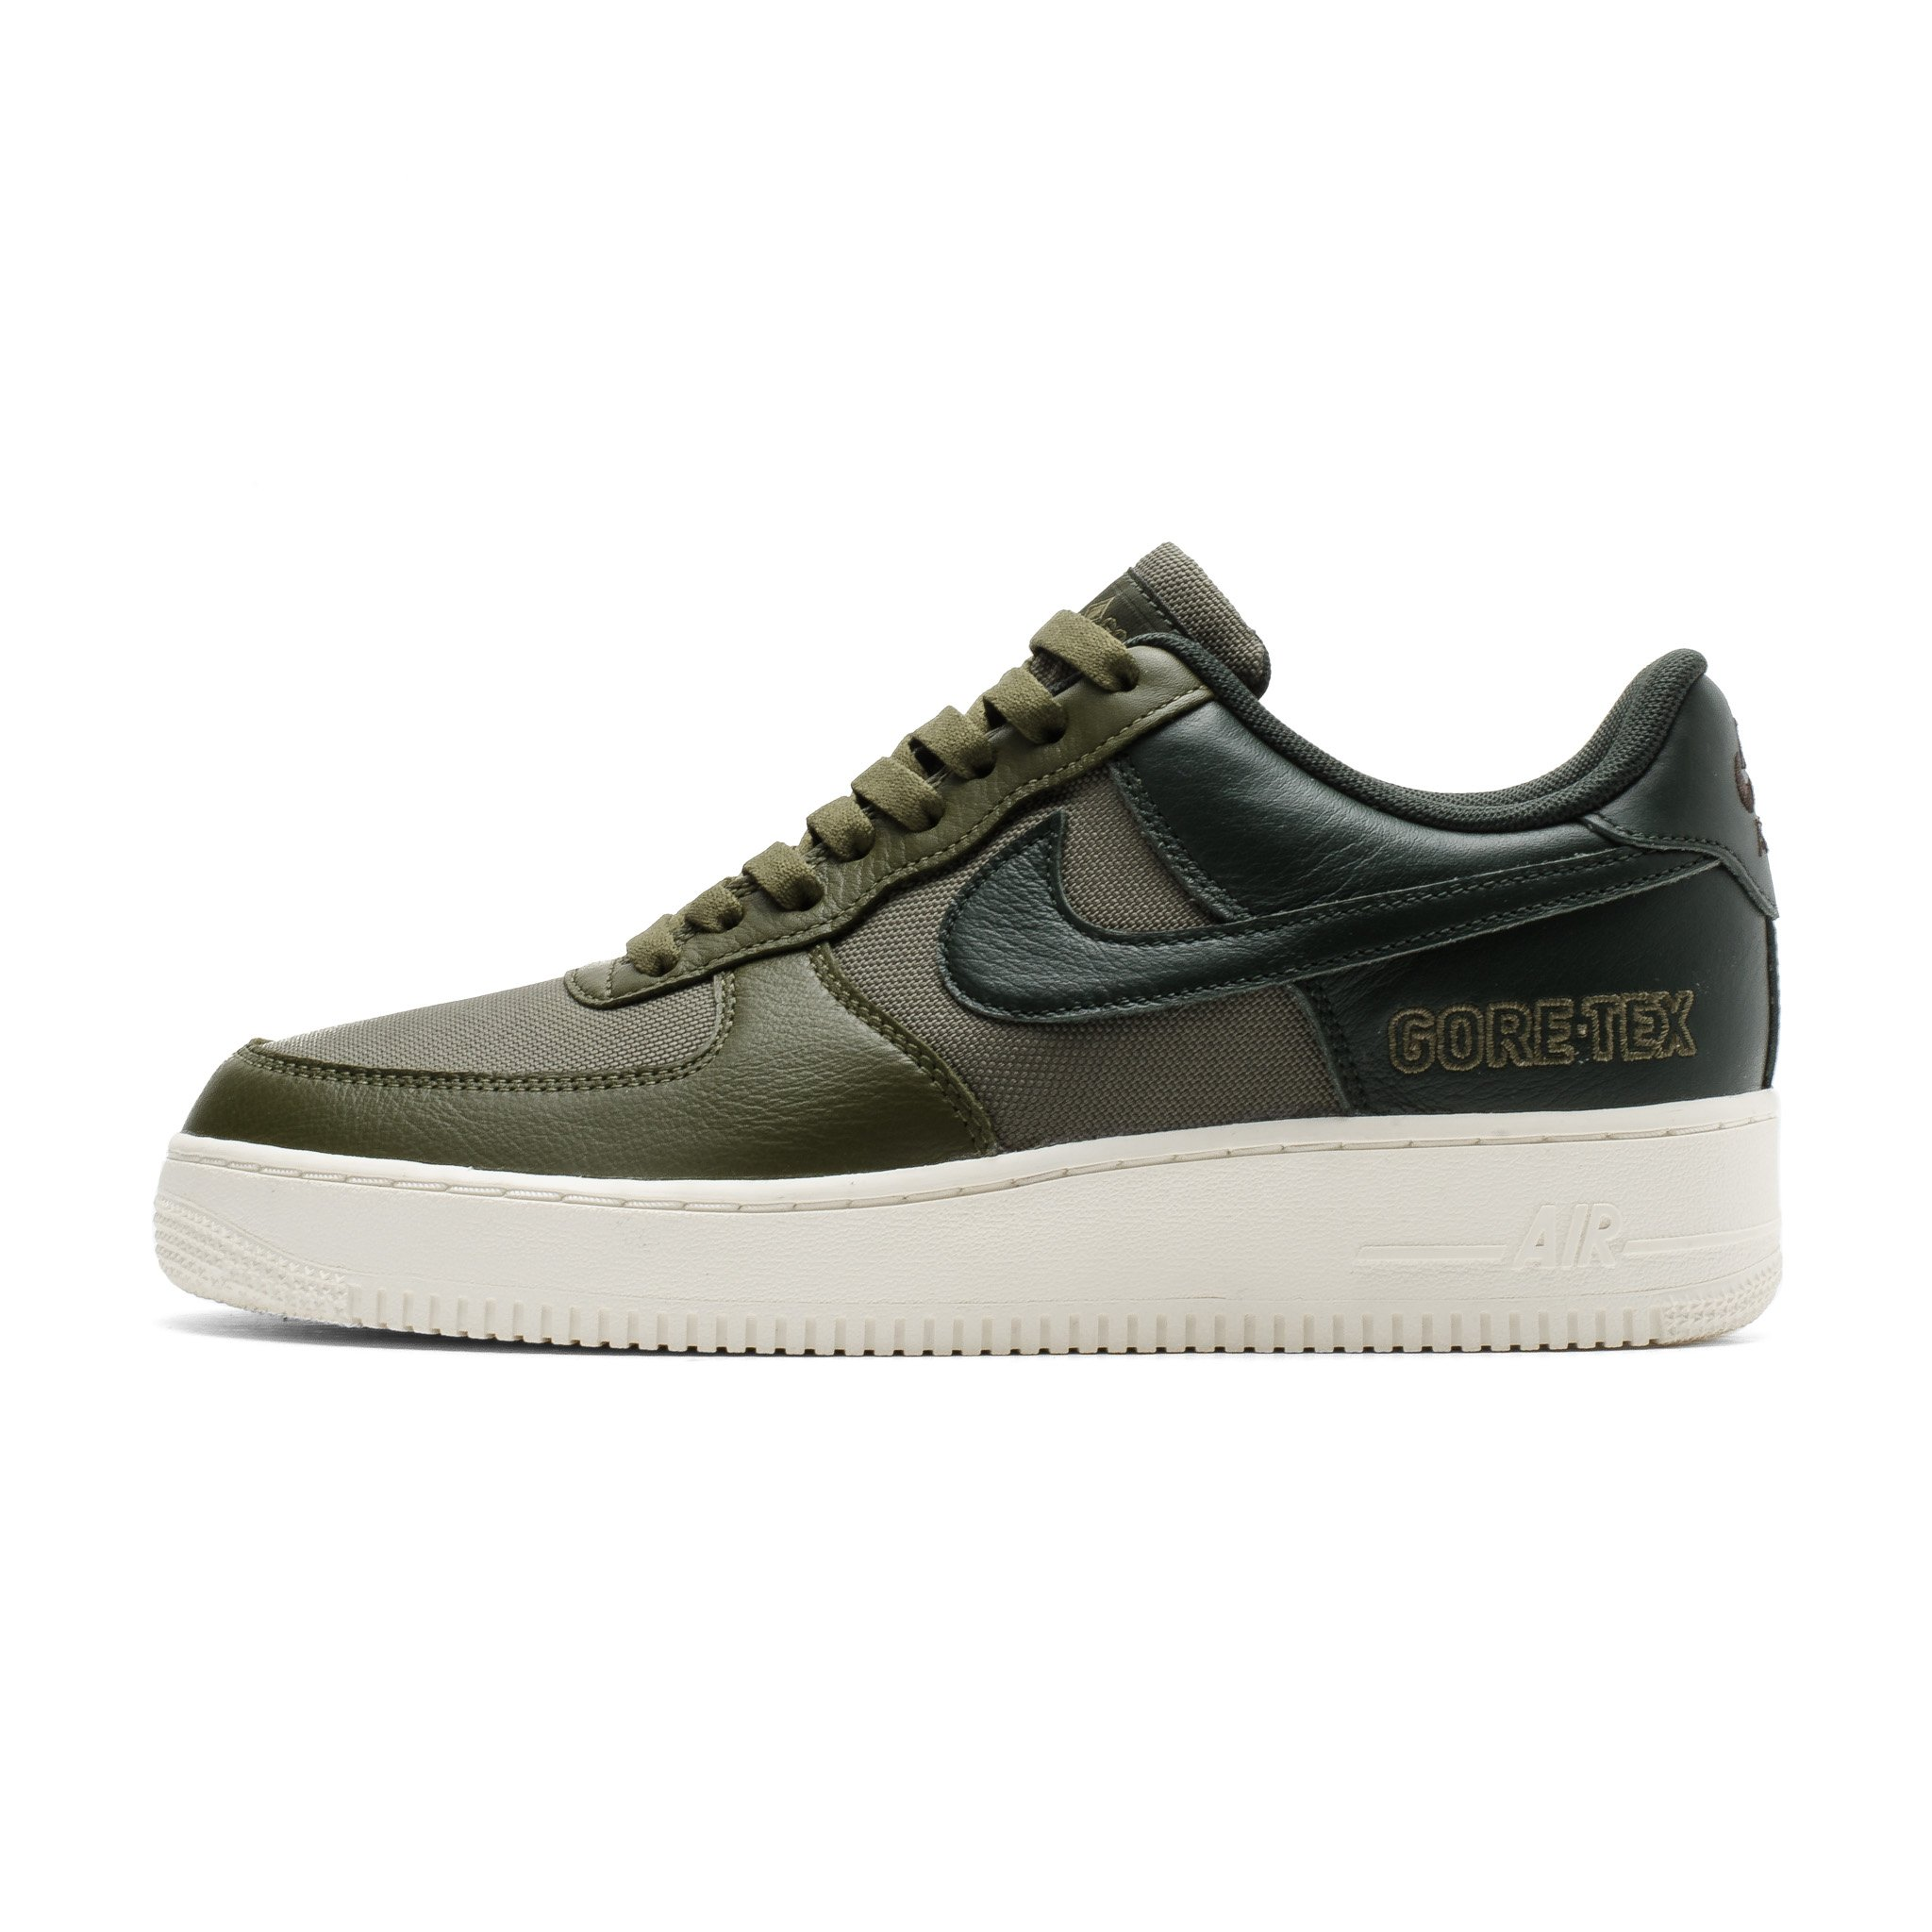 Air Force 1 GTX Olive